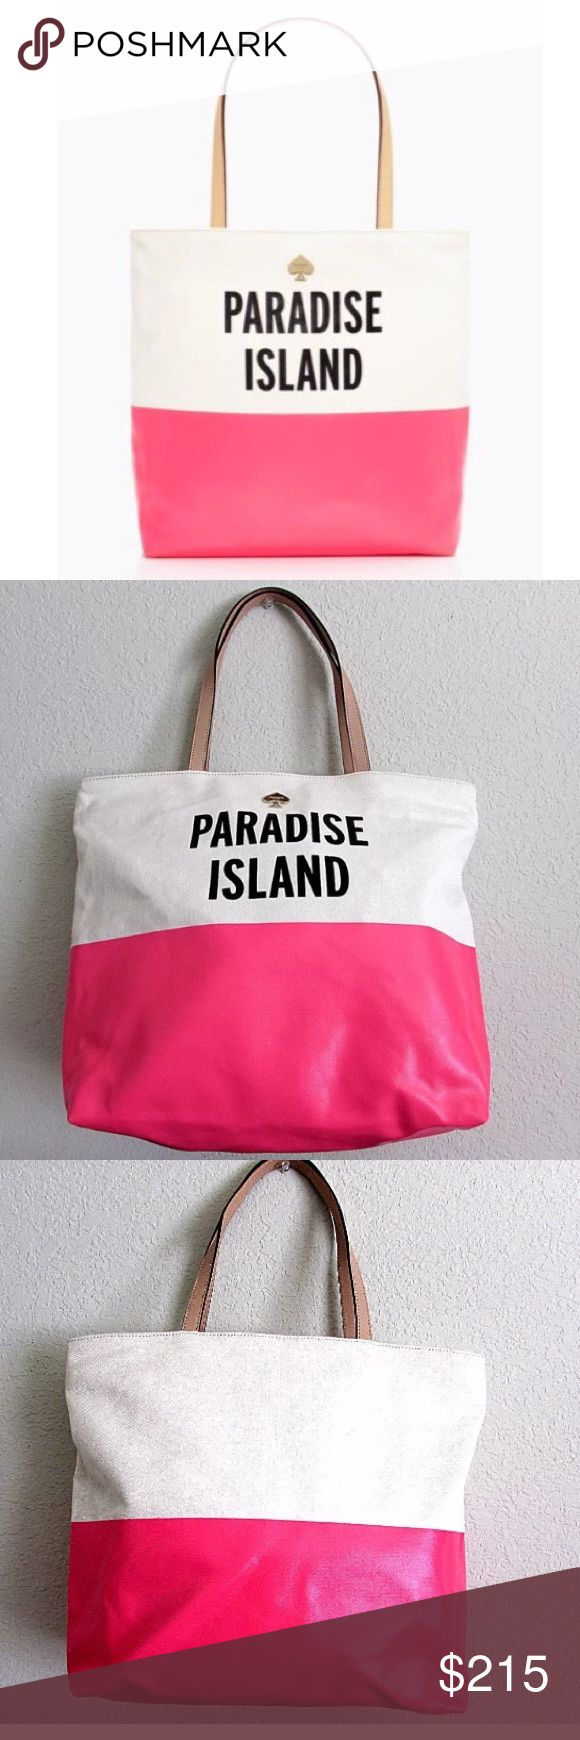 """🆕 Kate spade paradise island SPG tote purse bag Authentic Kate Spade for Starwood Preferred Guest (SPG) limited edition tote bag.  The tote was produced in limited quantities, sold through a few select stores and is long sold out.  This particular bag reads """"PARADISE ISLAND"""" and was one of four specialty bags produced for the collaboration. Brand new without tags or anchor keychain. kate spade Bags Totes"""